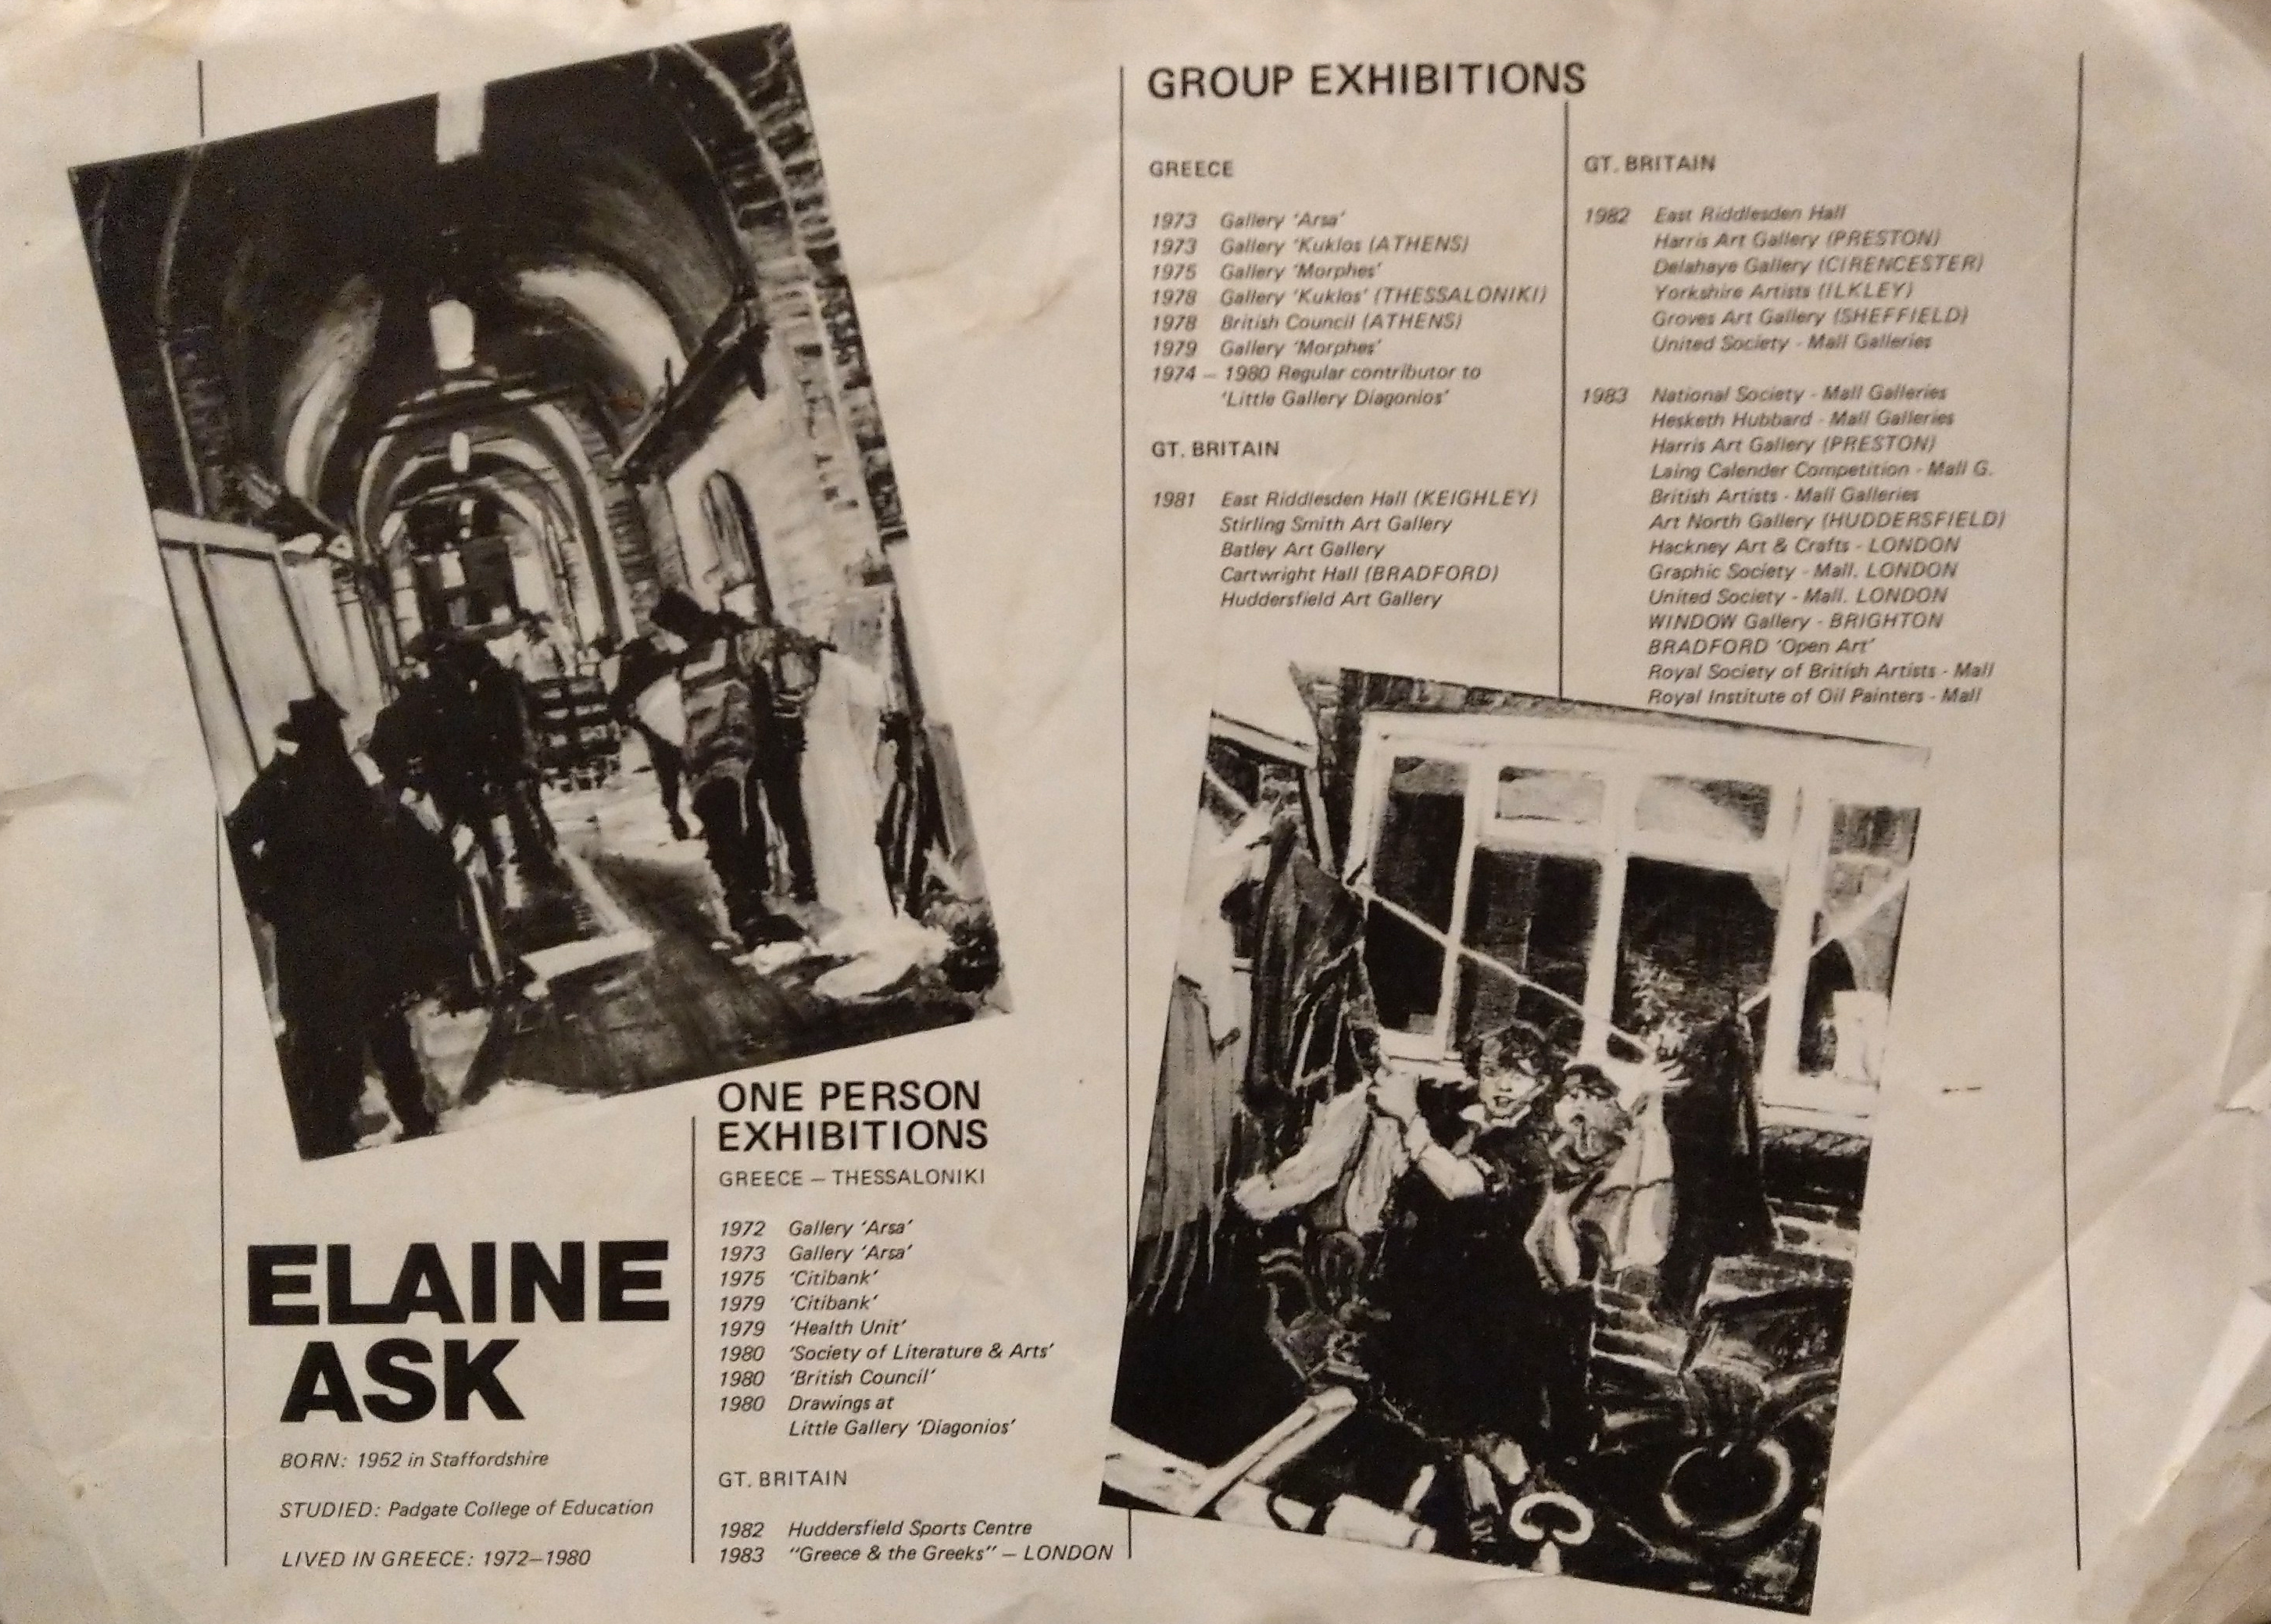 Elaine Ask Solo and Group Art Exhibitions 1972-1984